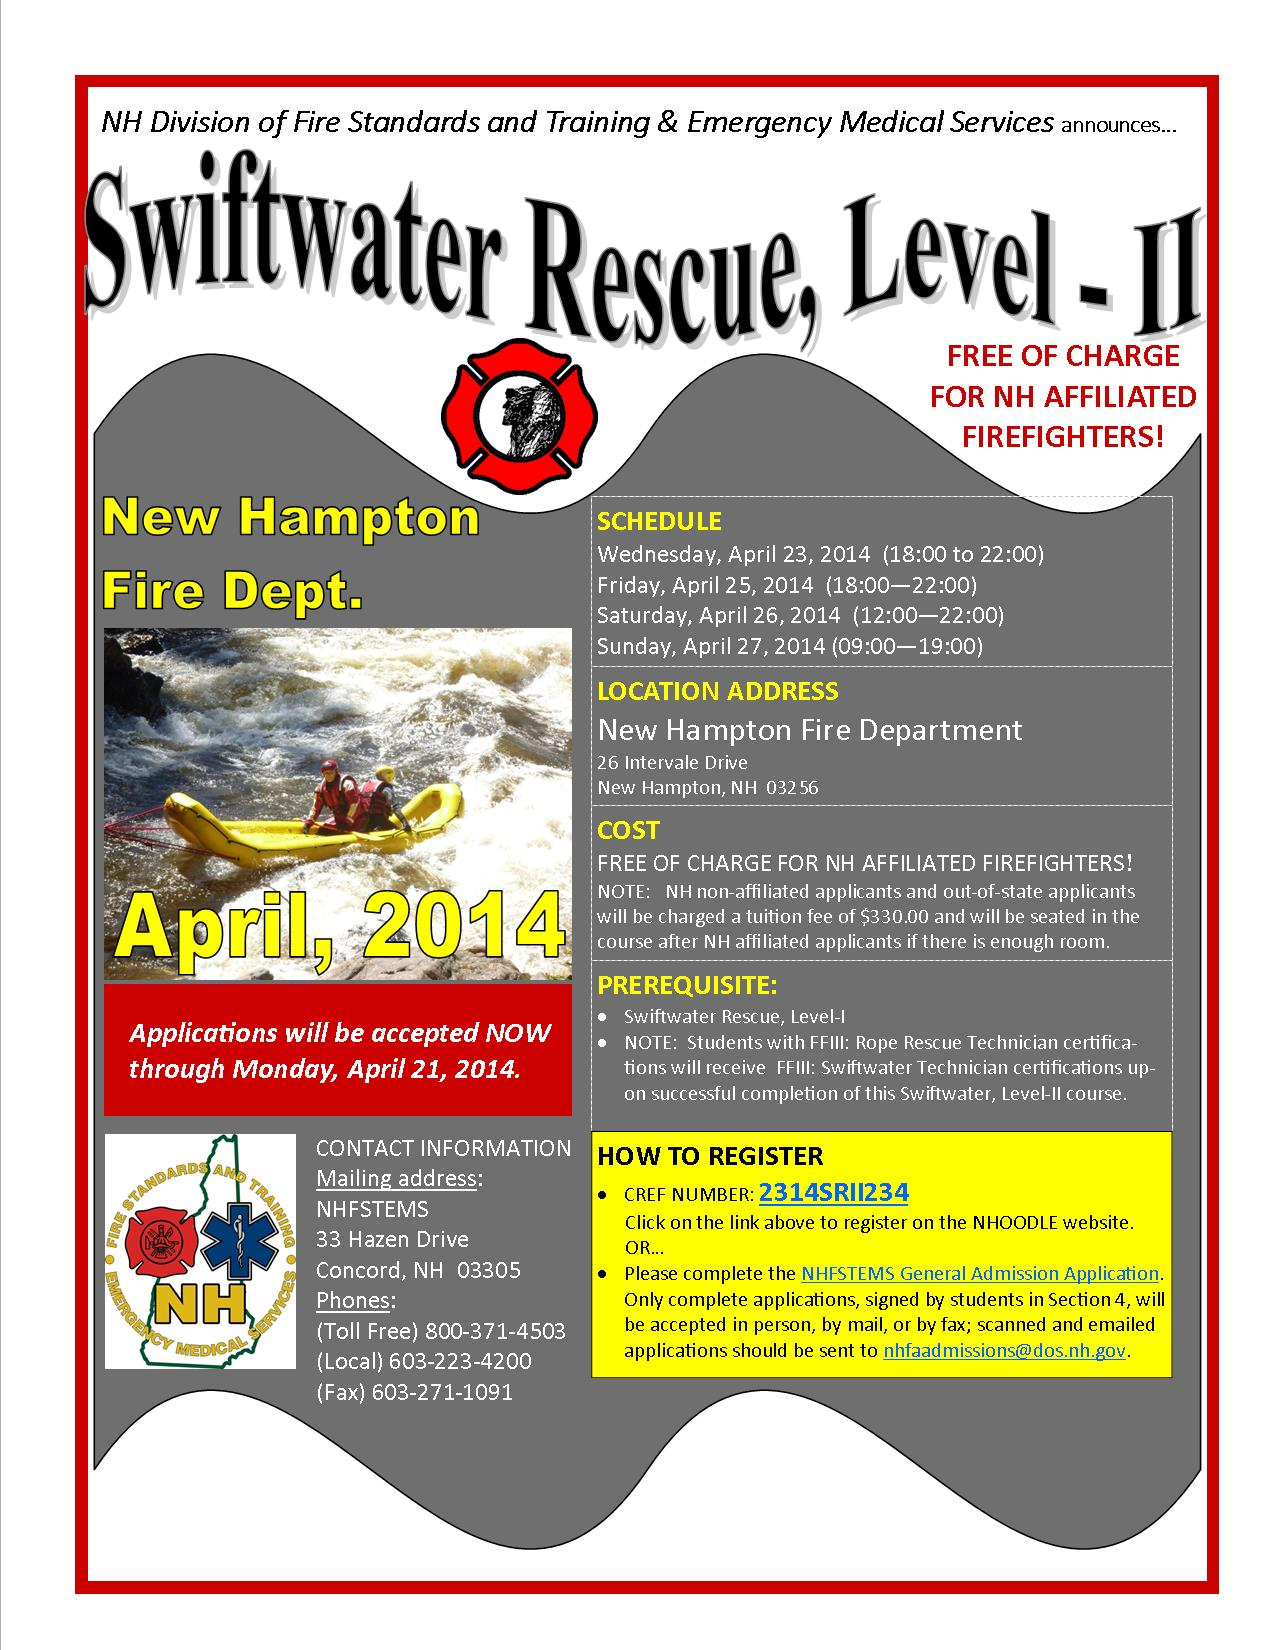 Swiftwater2 NewHampton2314srii234